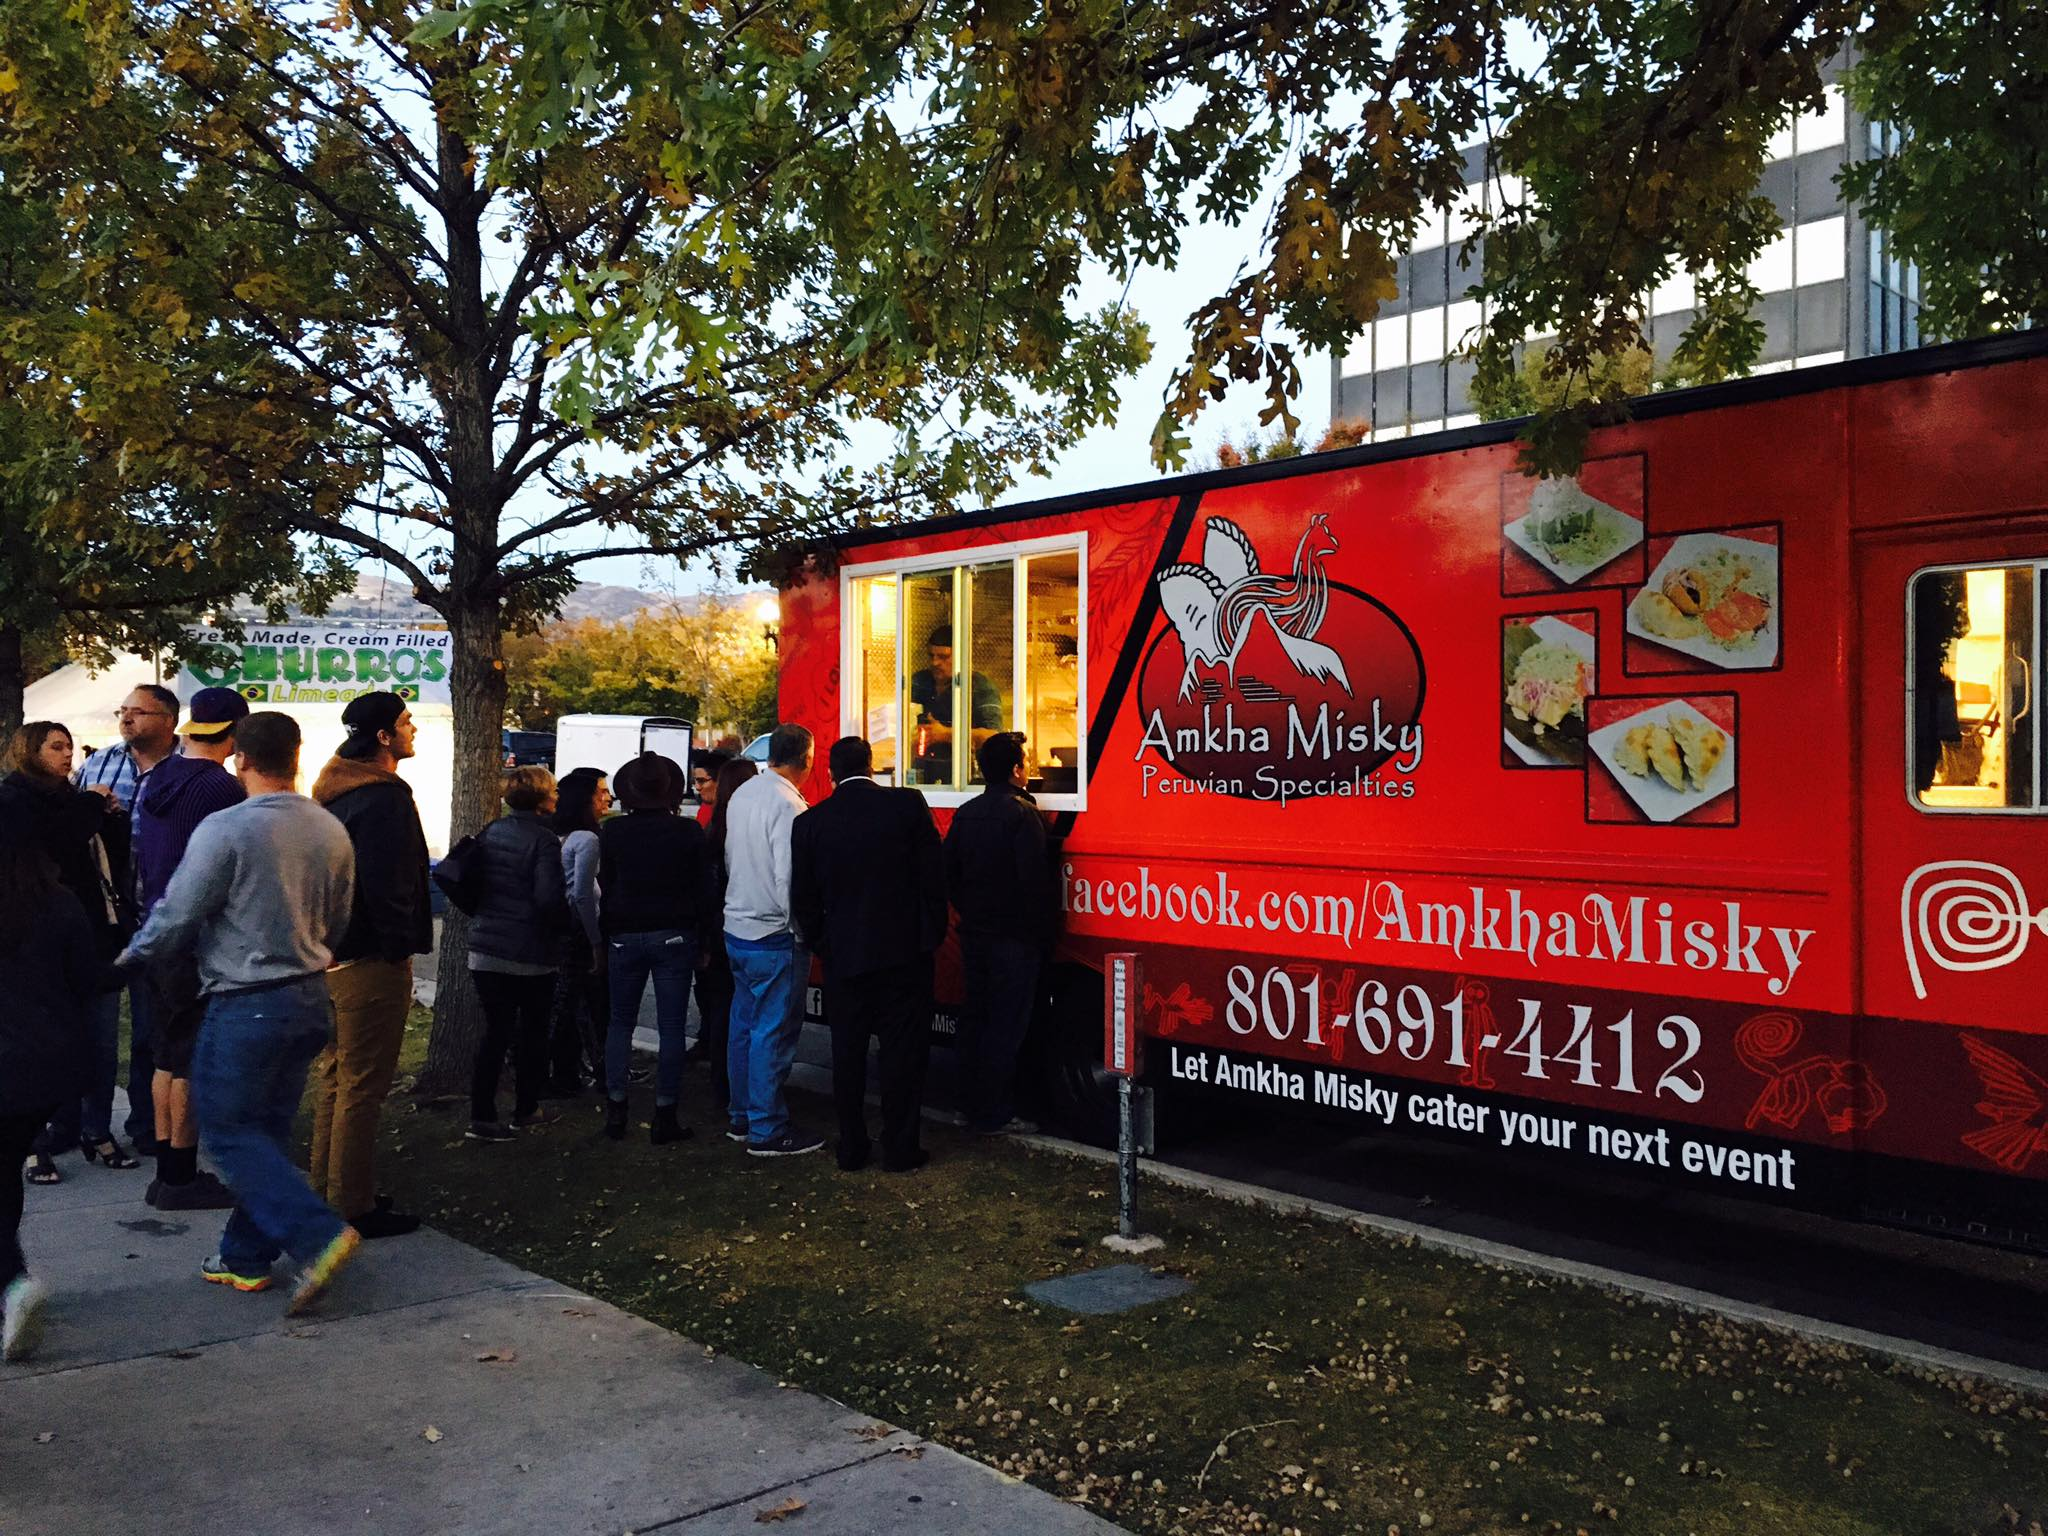 Amkha Misky Peruvian Food Truck in the United States